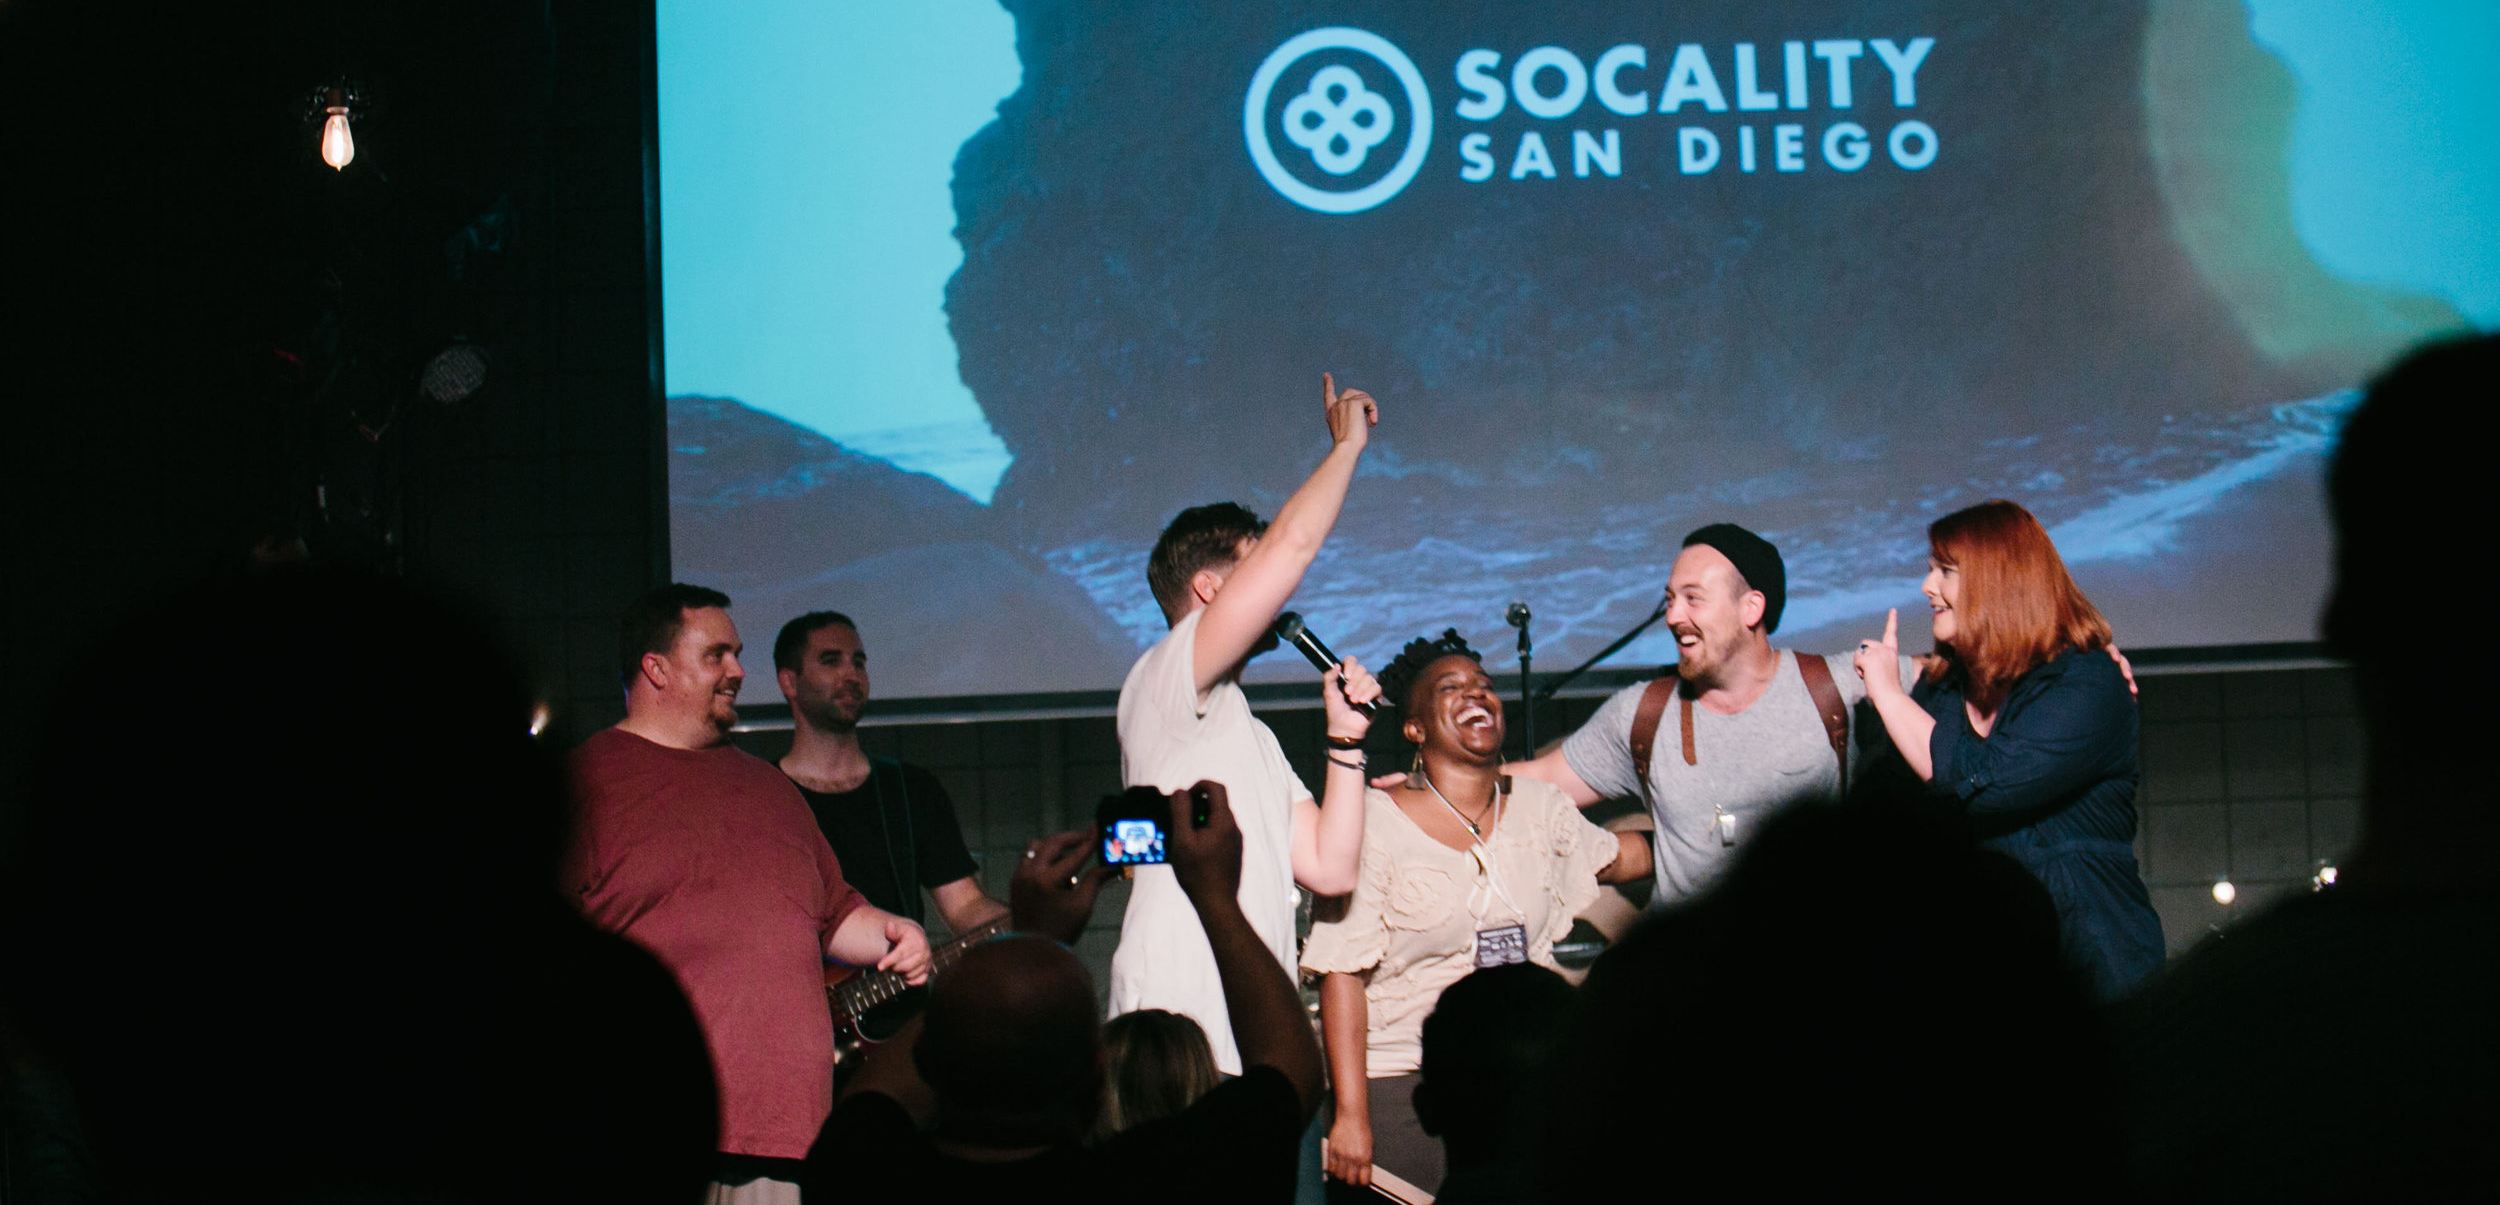 Night one of Socality Live San Diego we spontaneously sang happy birthday to three attendees on July 29, 2015.